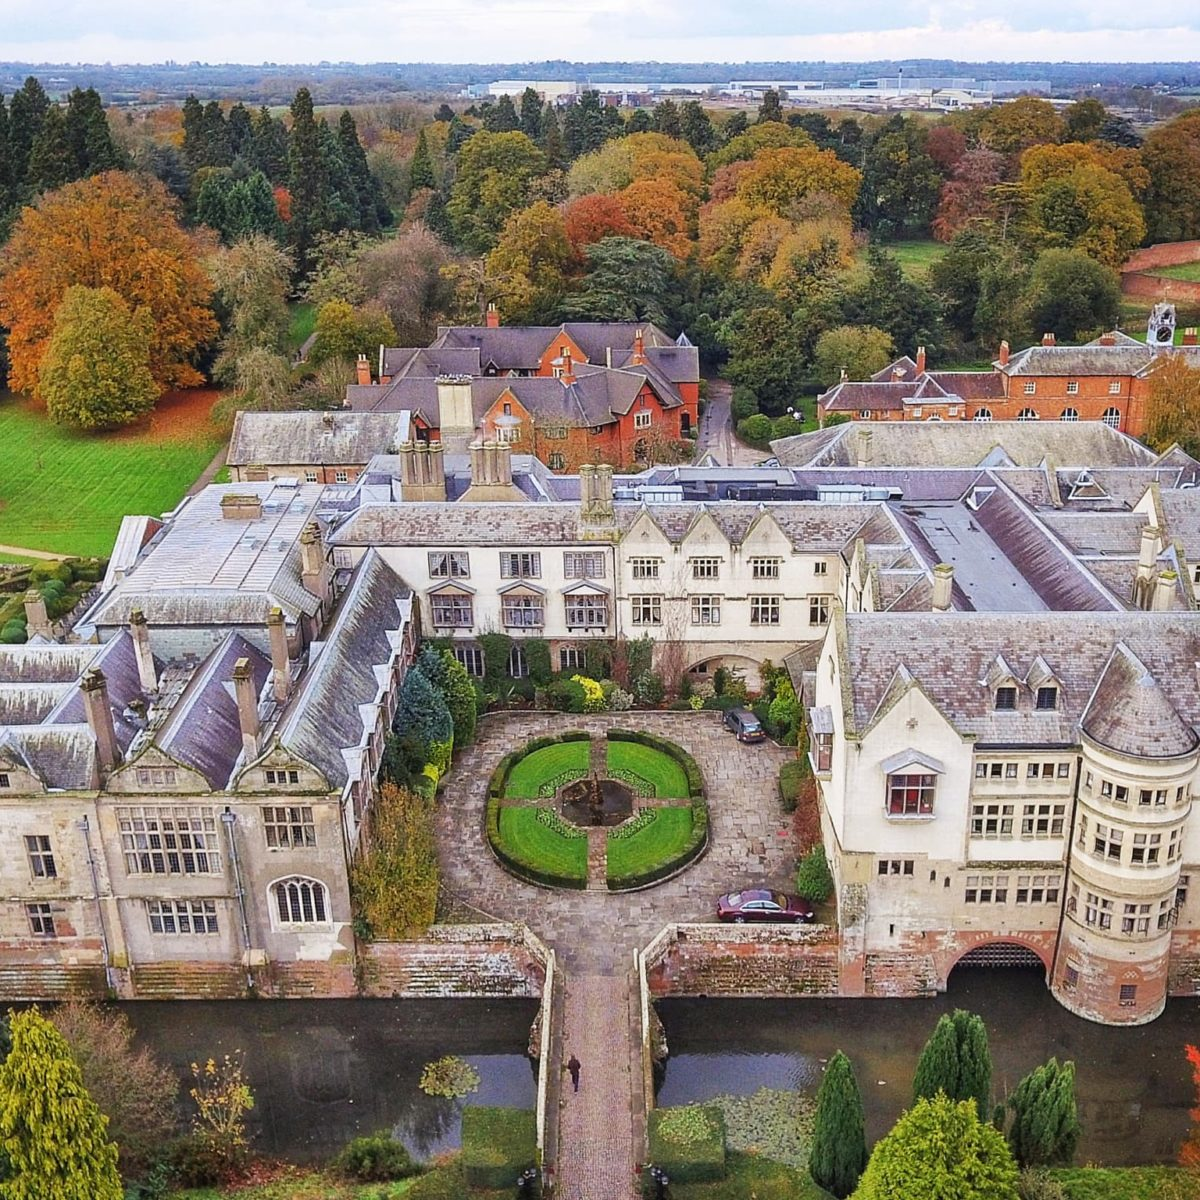 Coombe Abbey Drone View